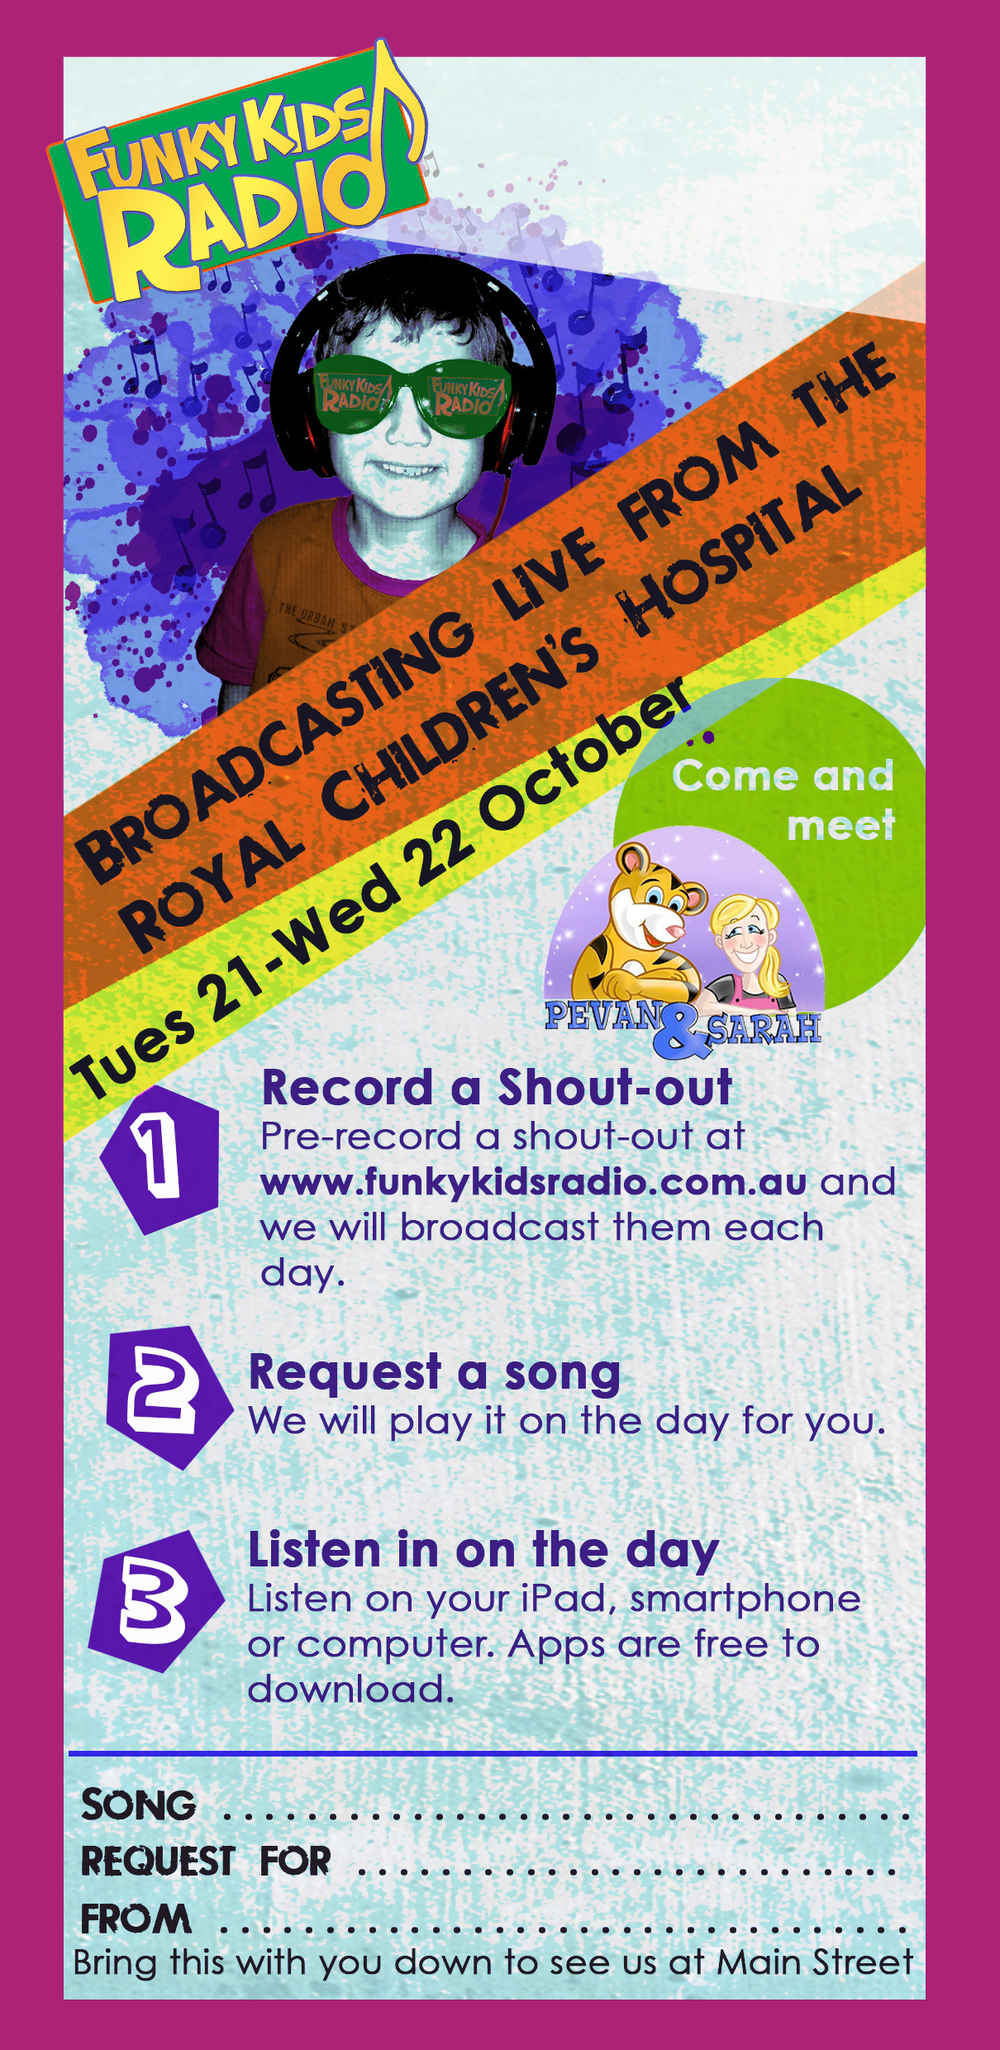 RCH_promotional flyer_oct_2014_v2.jpg